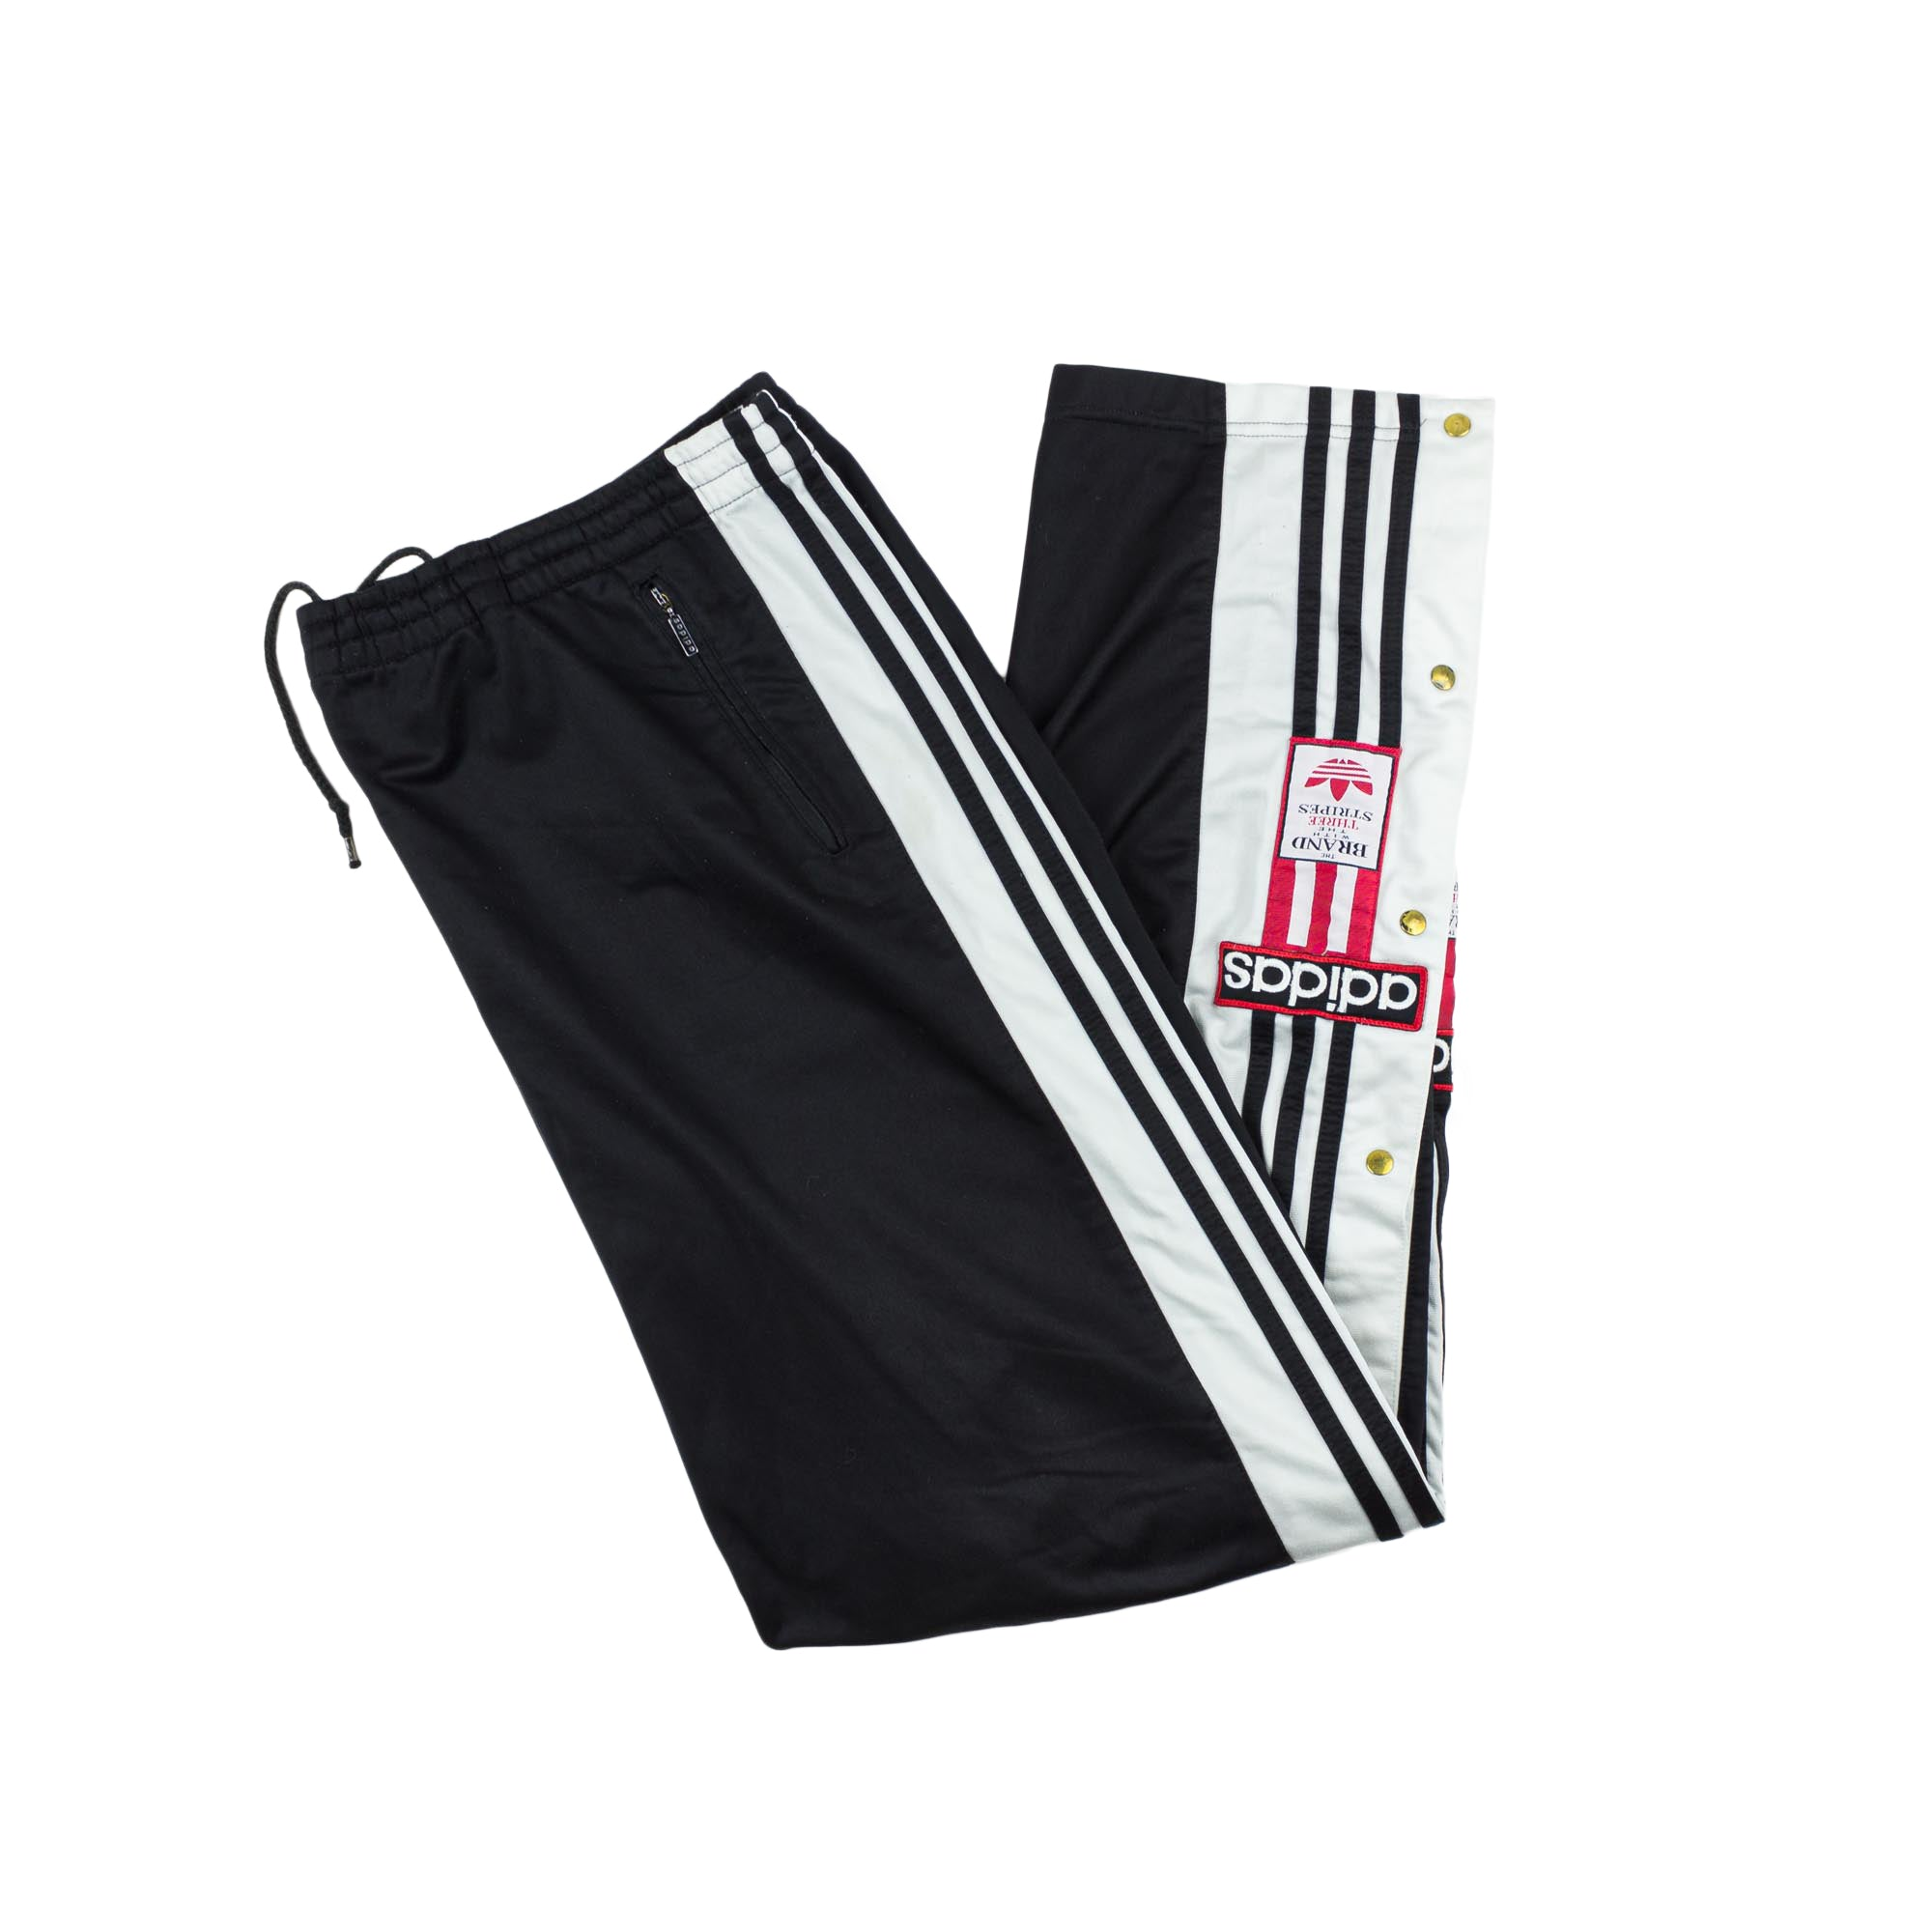 VINTAGE ADIDAS POPPER PANTS XL